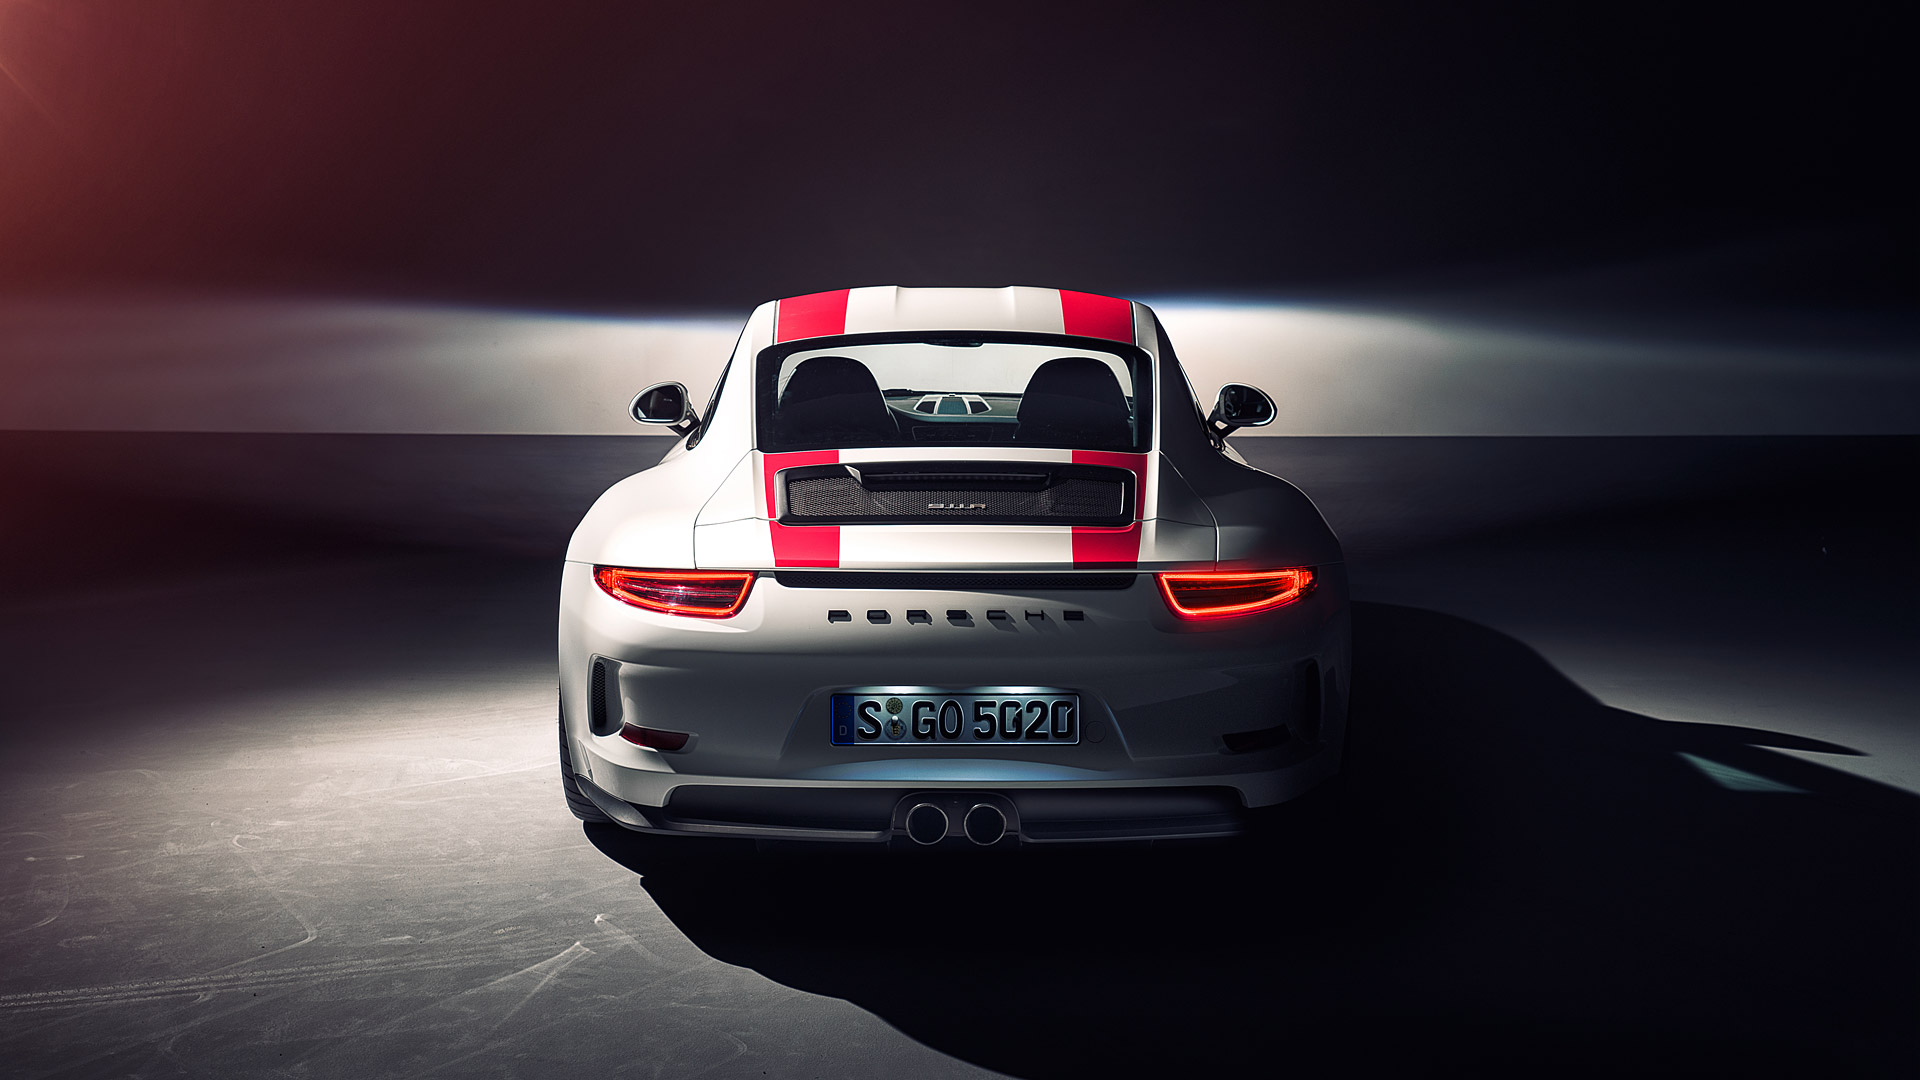 2017 Porsche 911 R Wallpapers HD Images   WSupercars 1920x1080